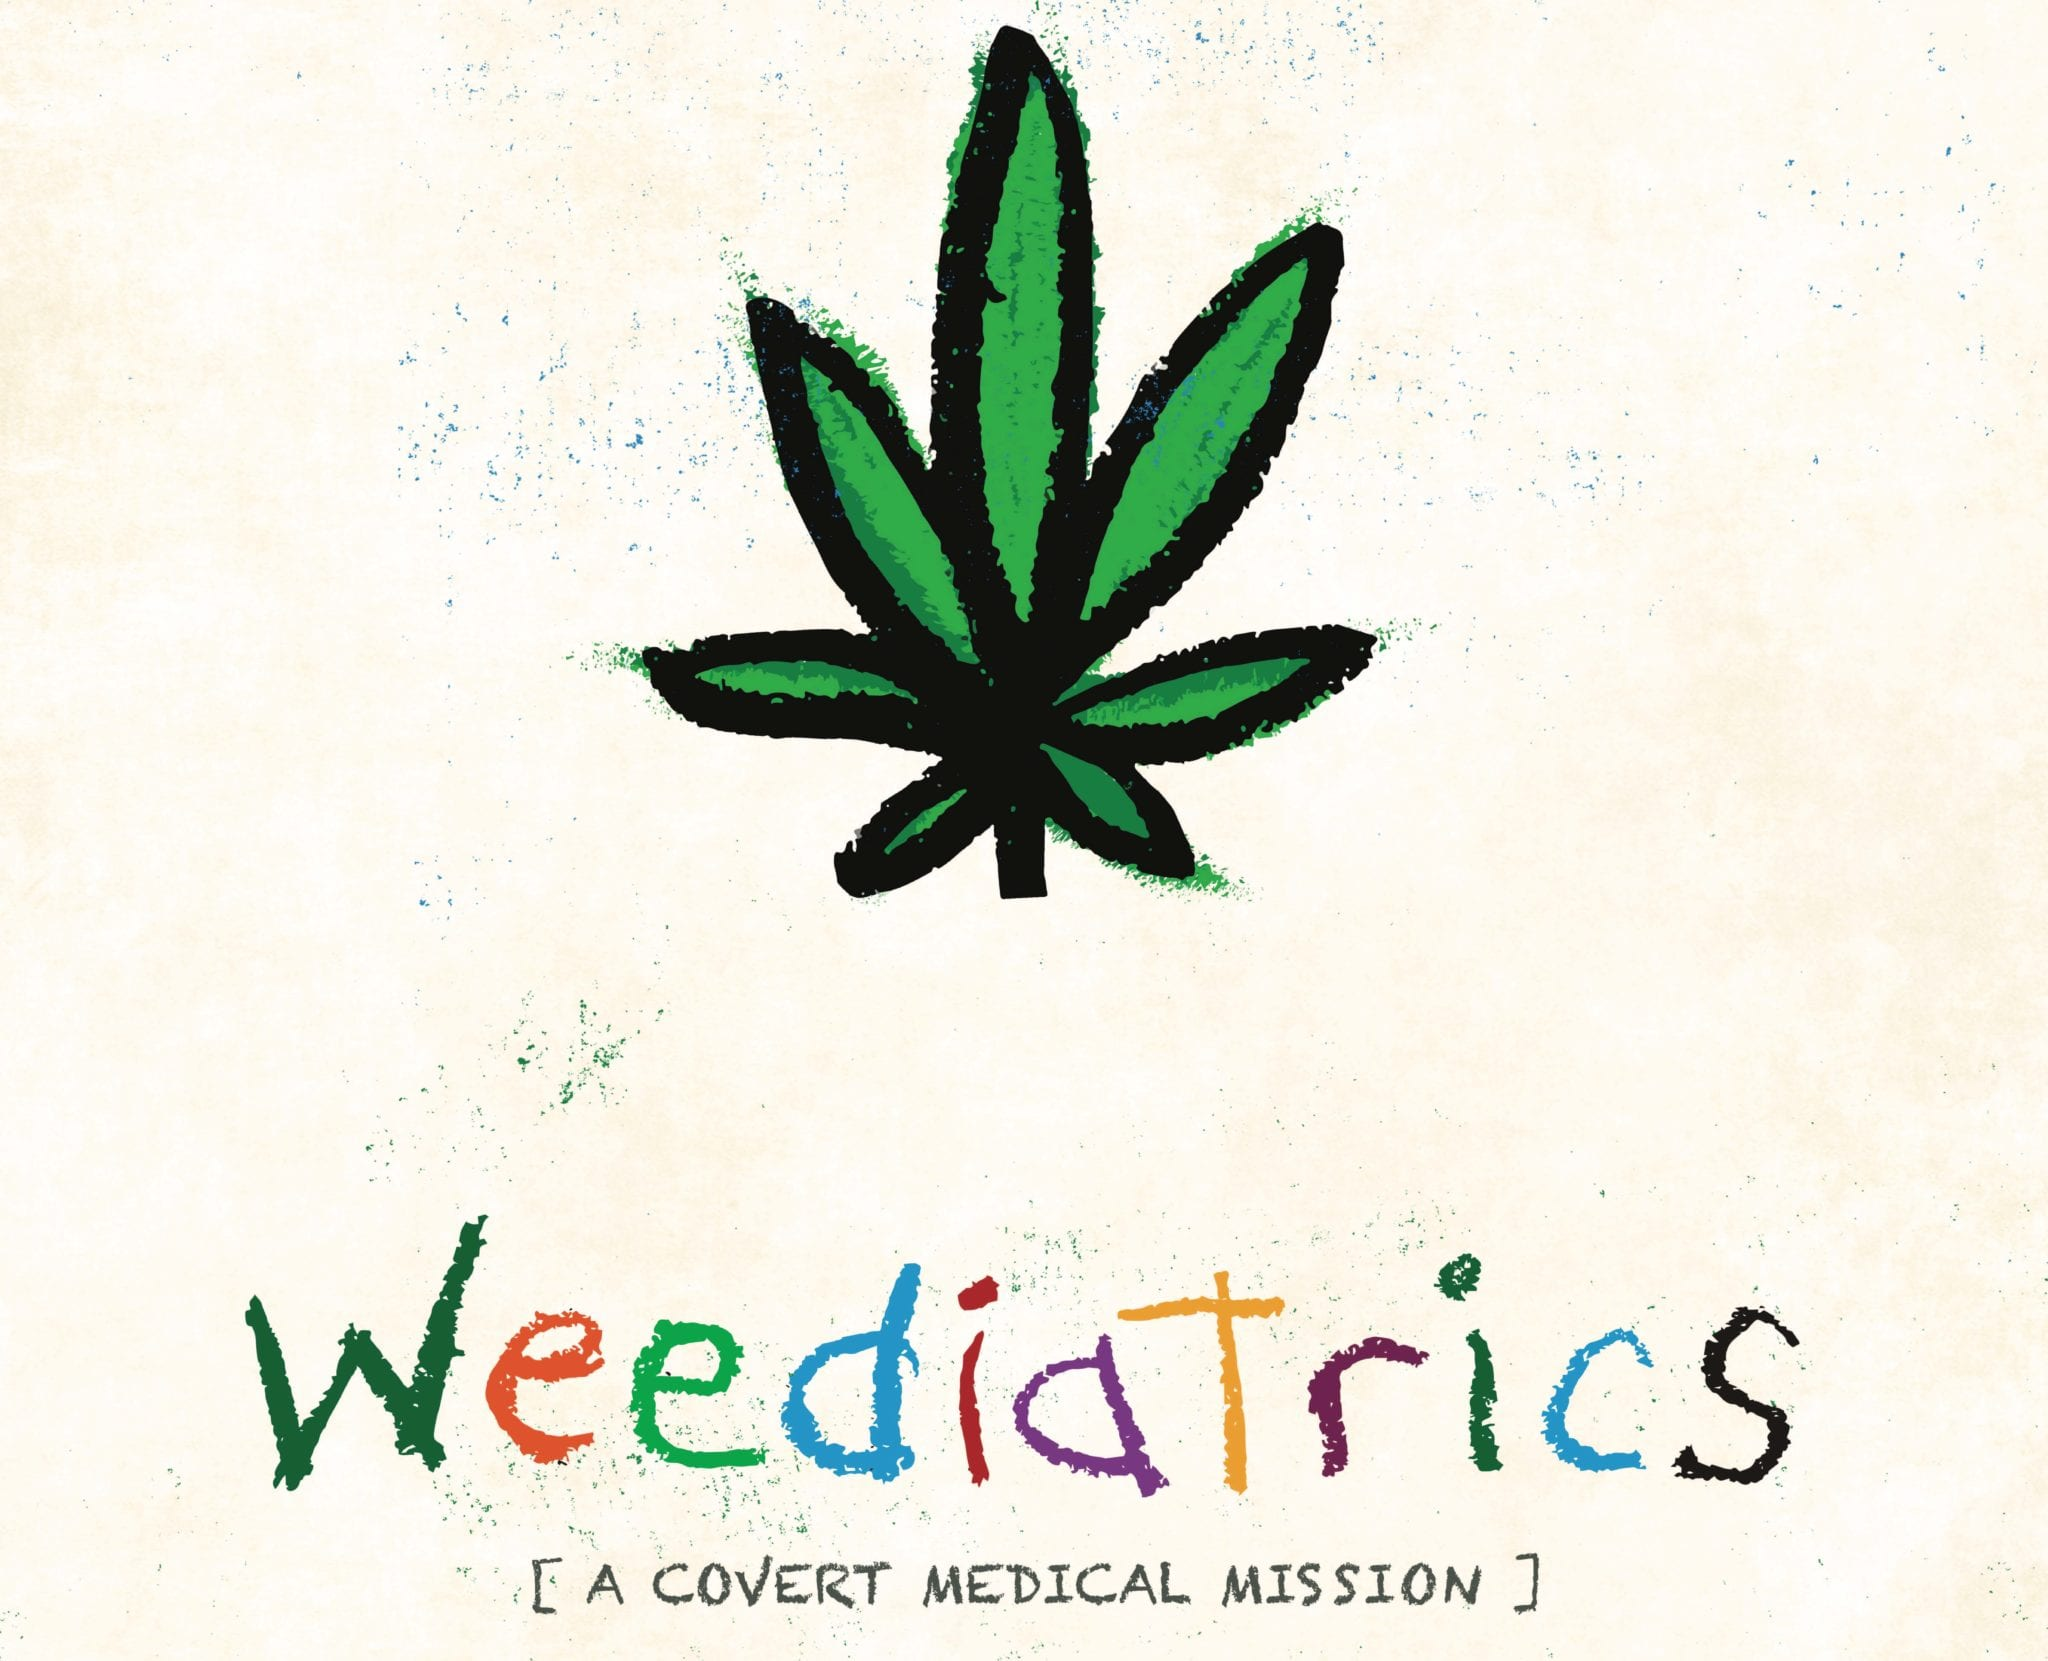 Parents Risk It All for Medical Cannabis Treatment In New Documentary